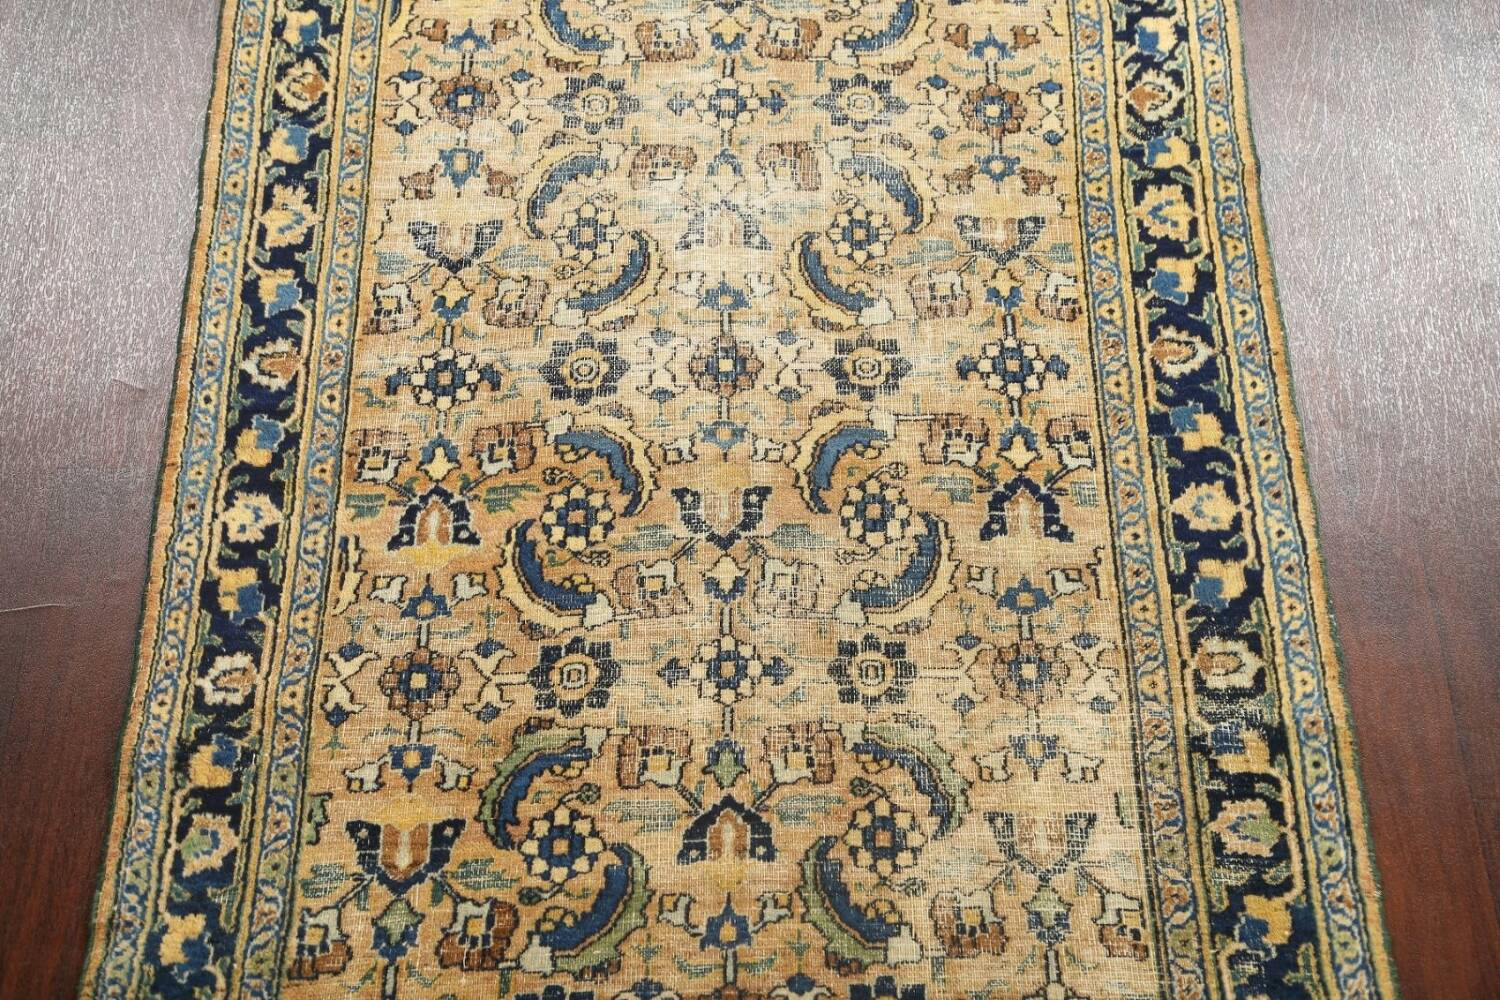 Pre-1900 Antique Vegetable Dye Sultanabad Persian Area Rug 4x7 image 3